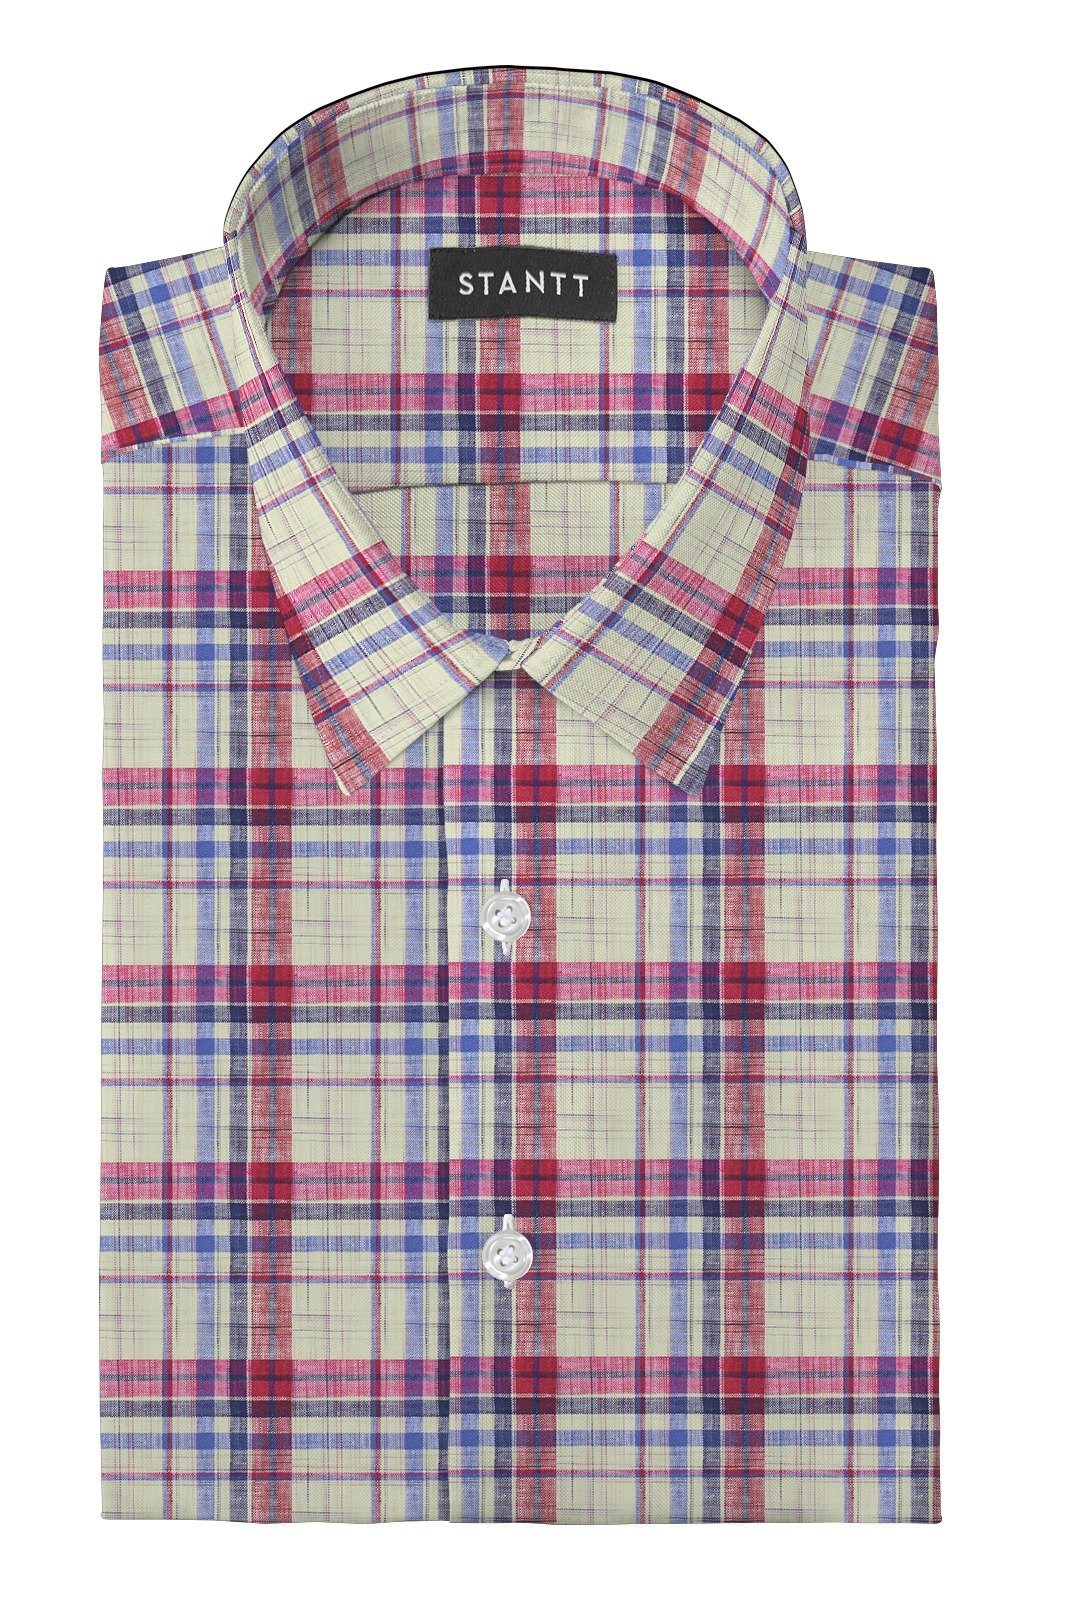 Linen Red Multi Plaid: Semi-Spread Collar, Barrel Cuff